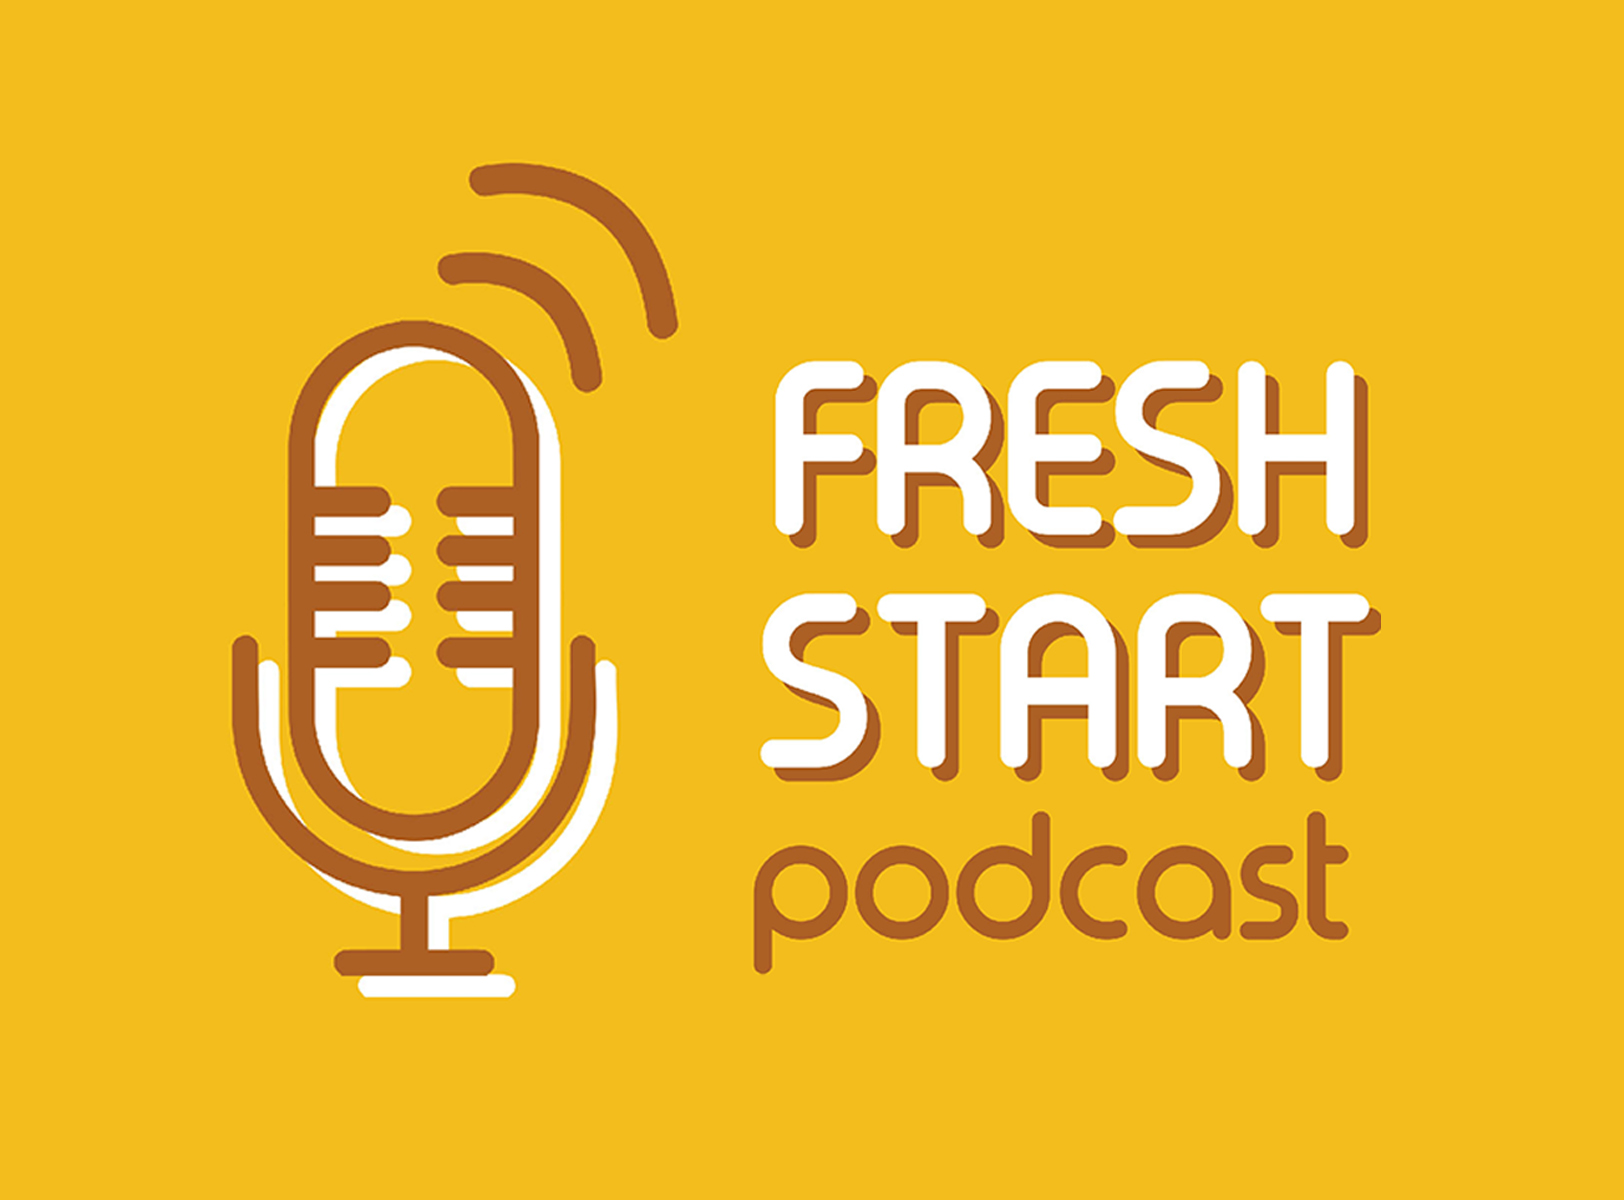 Fresh Start: Podcast News (2/23/2019 Sat.)